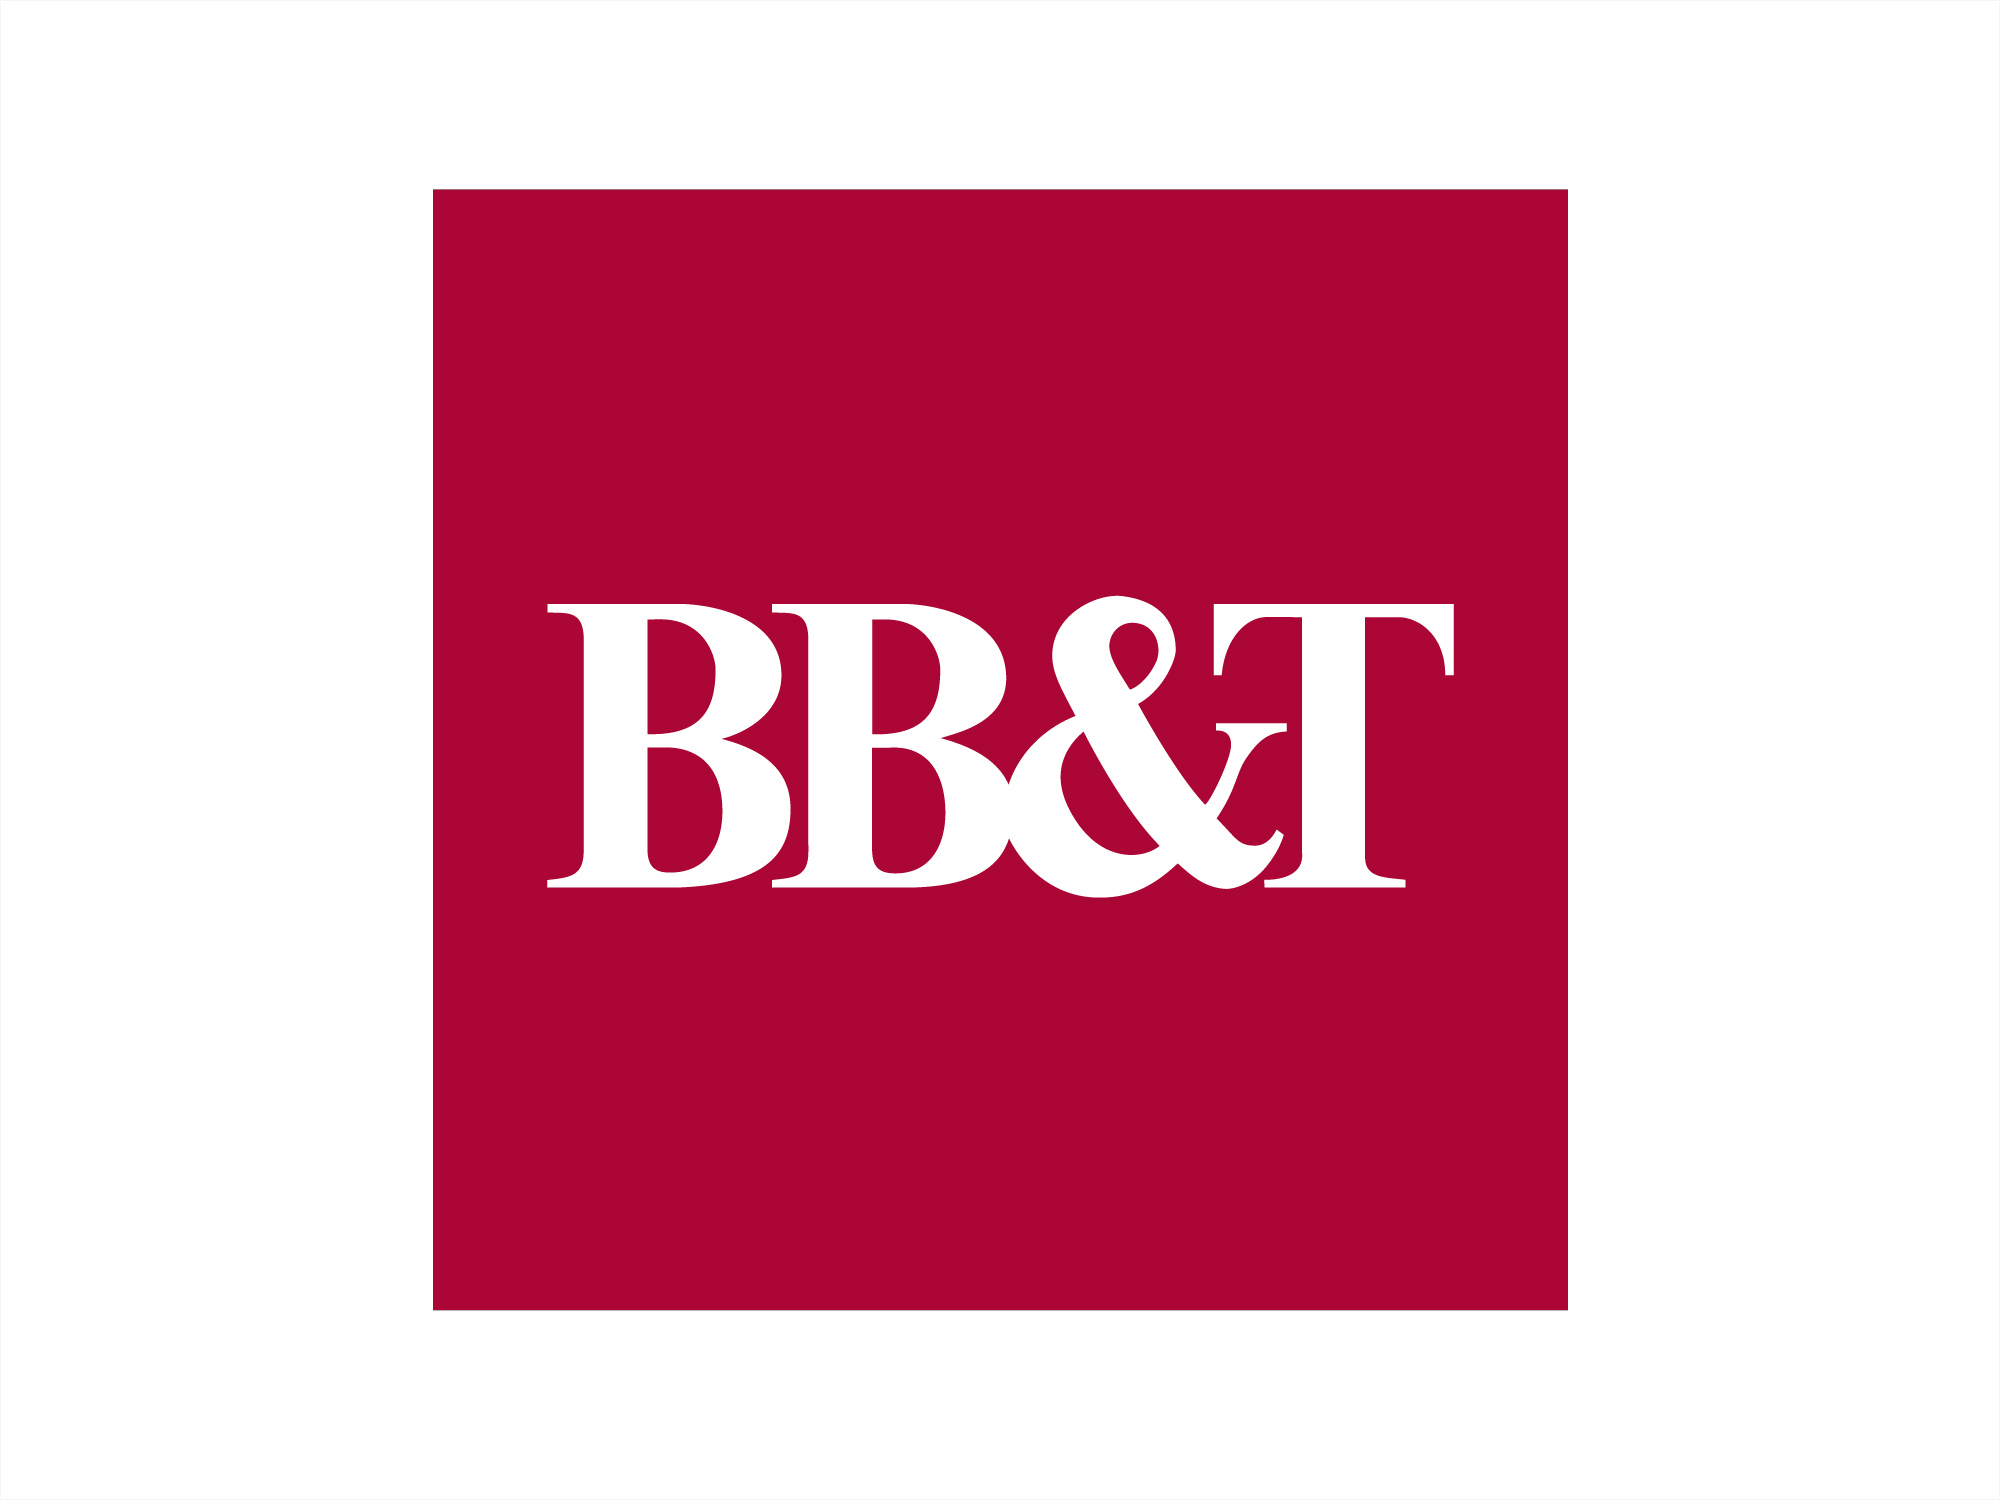 BB&T banking services down Friday morning due to technical issues